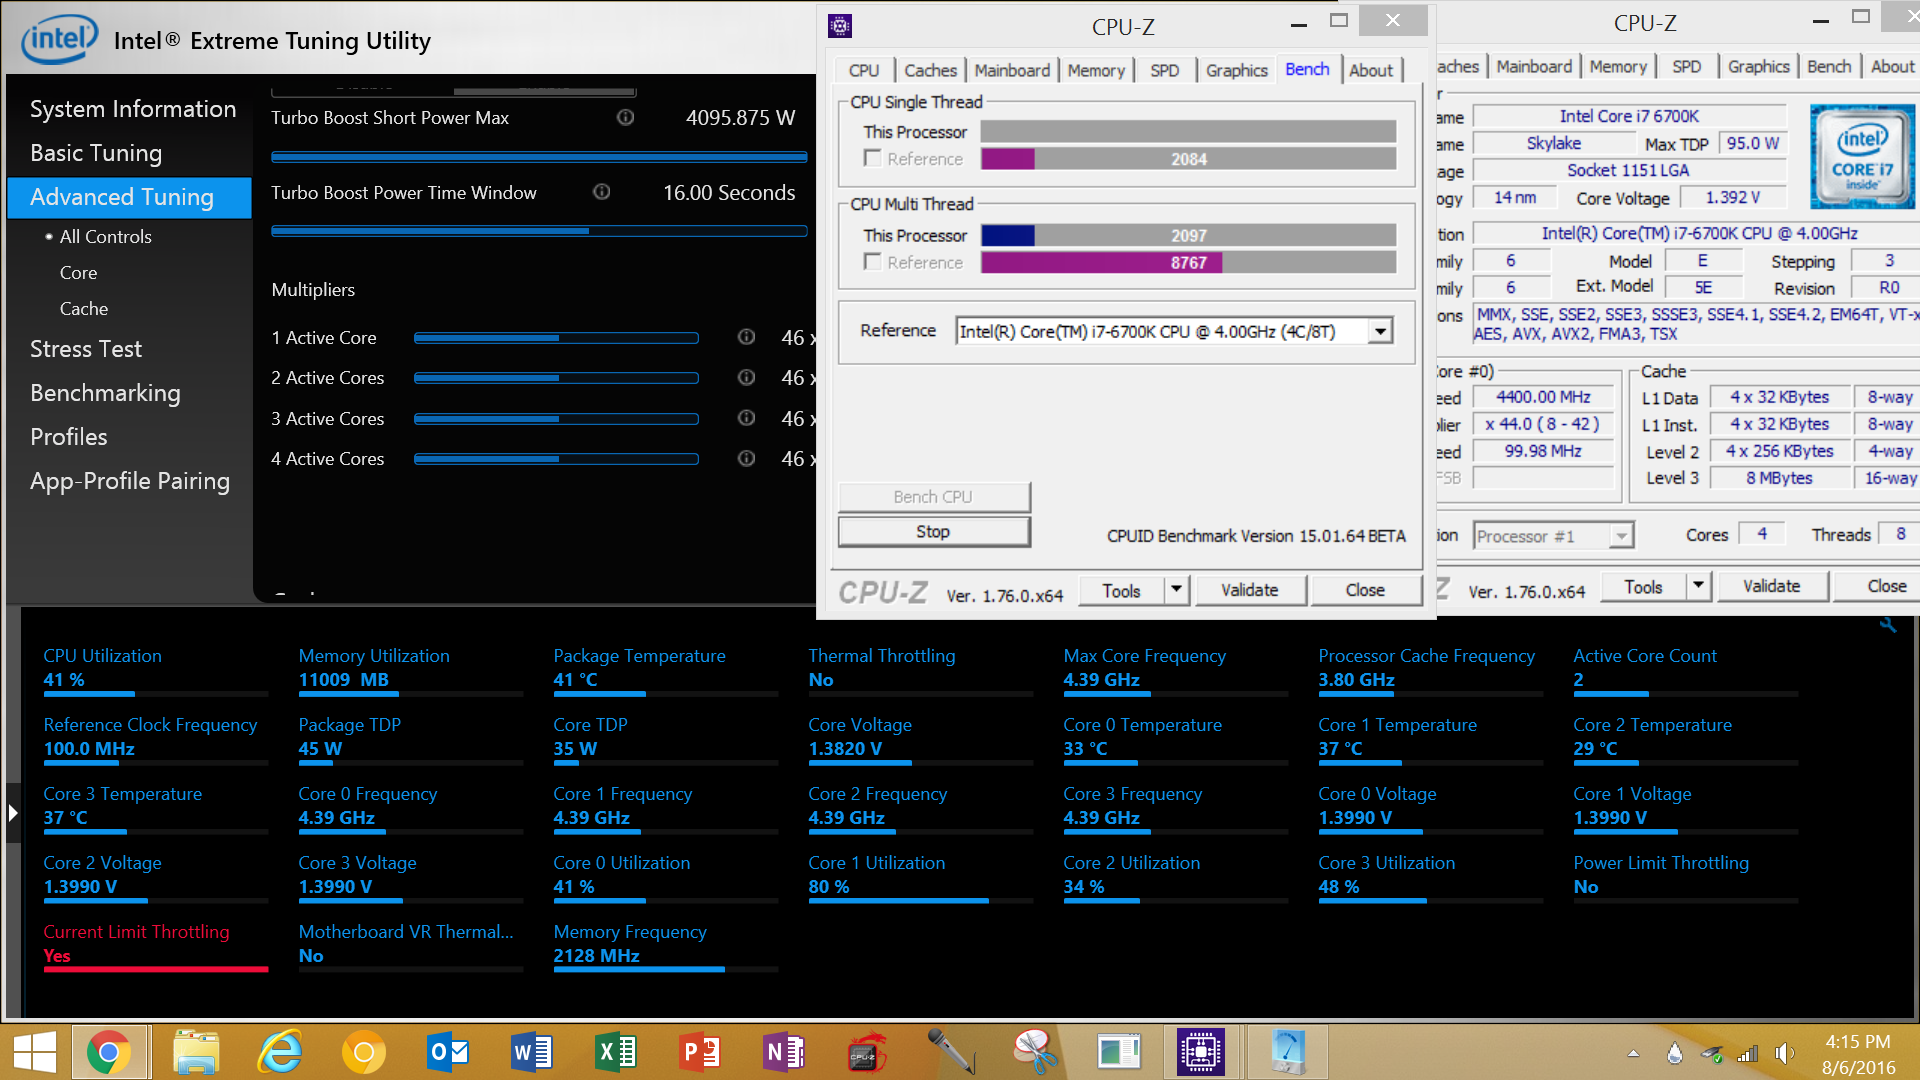 Current Limit Throttling when under load (but temps are ok) i7 6700k